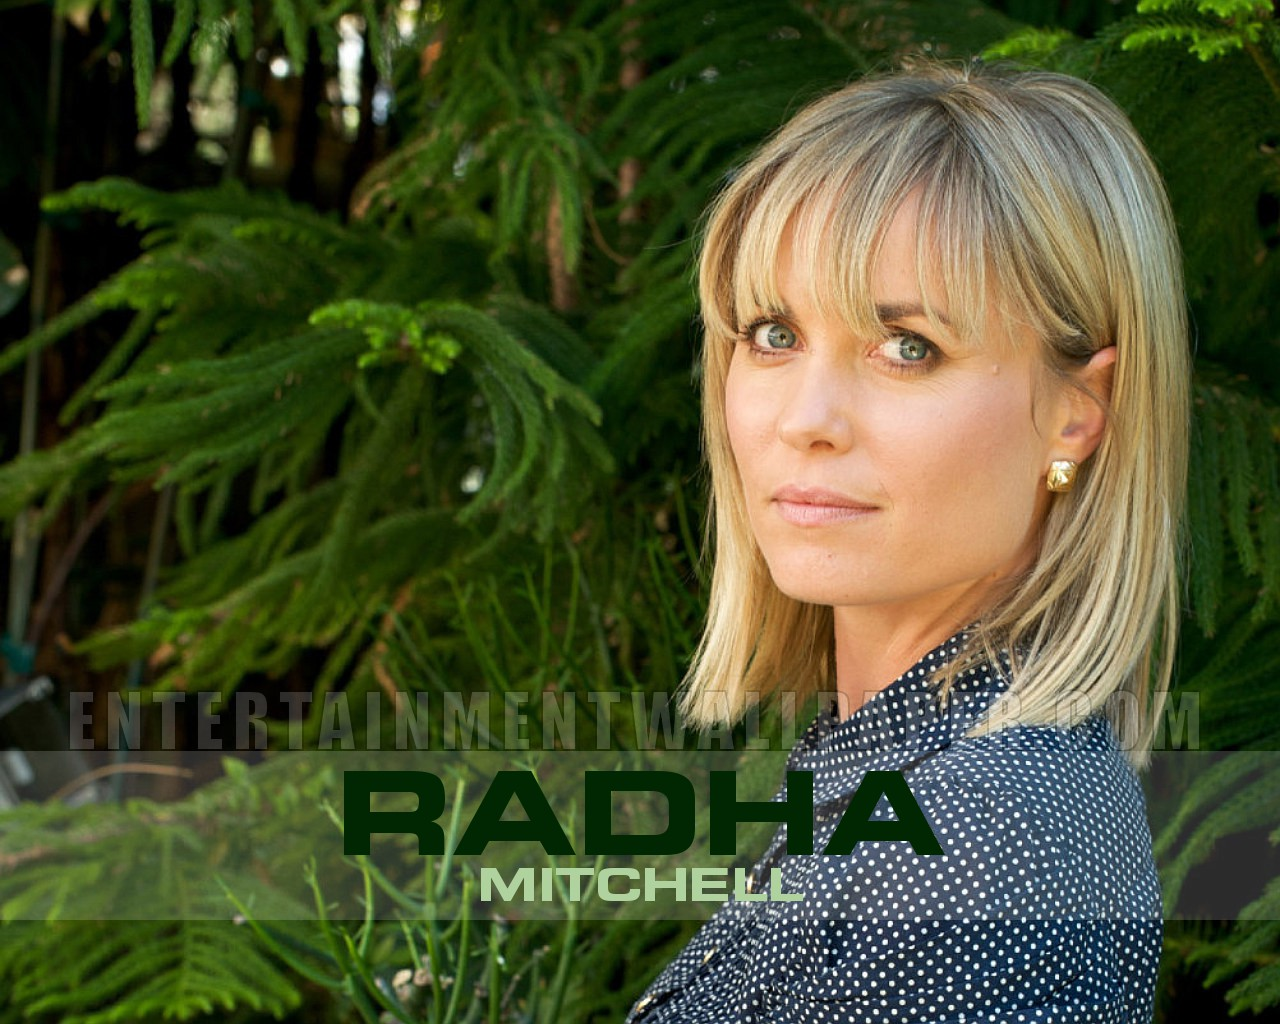 Celebrites Radha Mitchell nudes (75 foto and video), Ass, Cleavage, Instagram, cleavage 2019